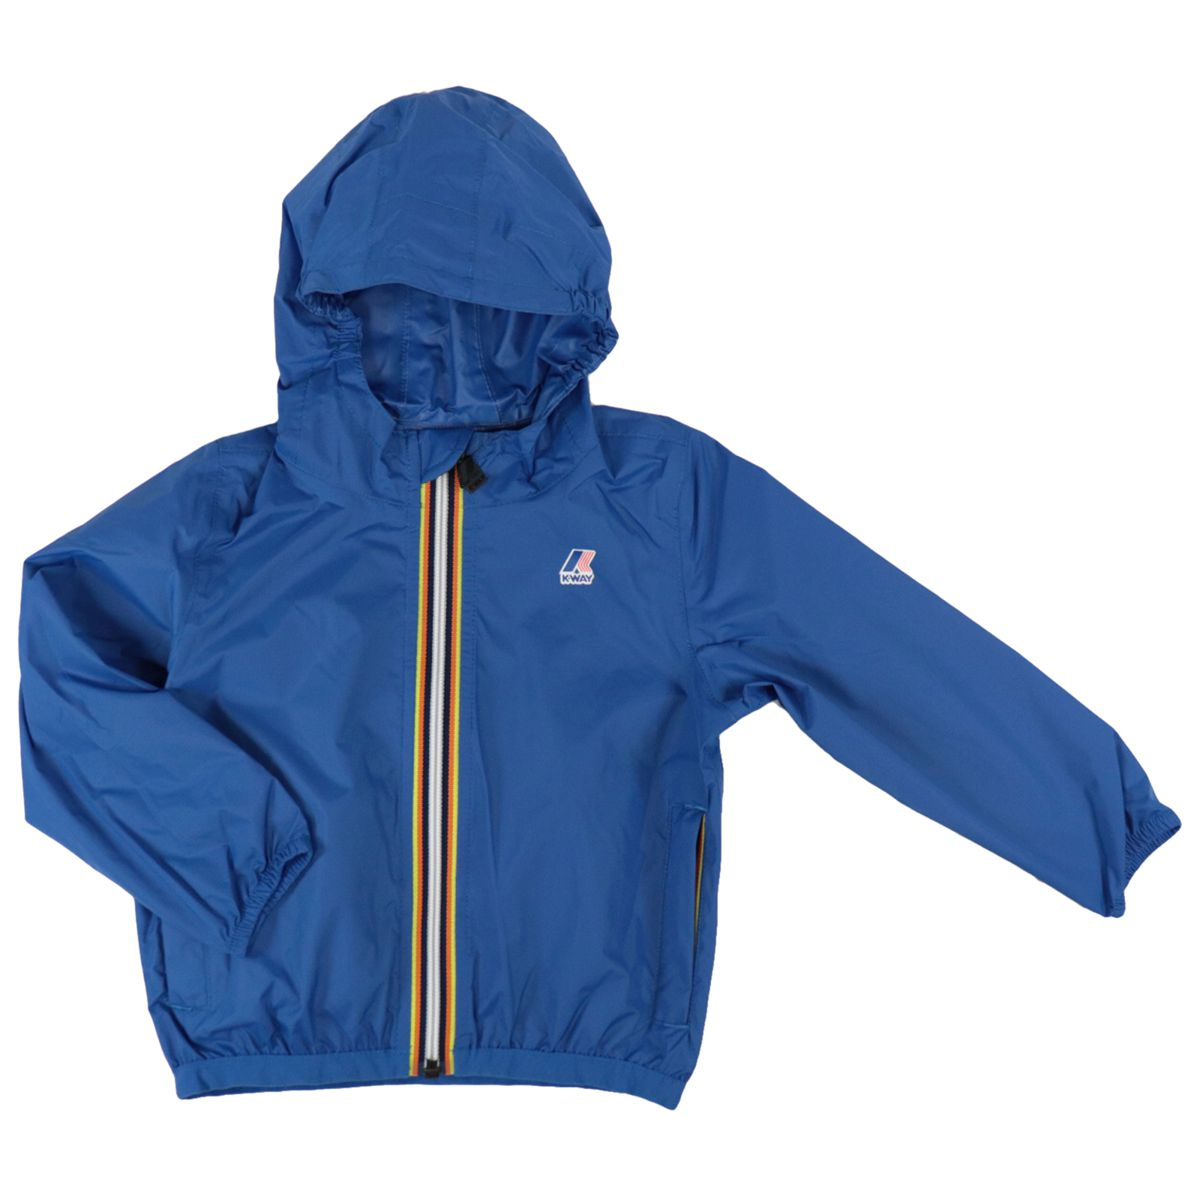 Le Vrai 3.0 Claudine nylon jacket with hood and zip Royal K-Way